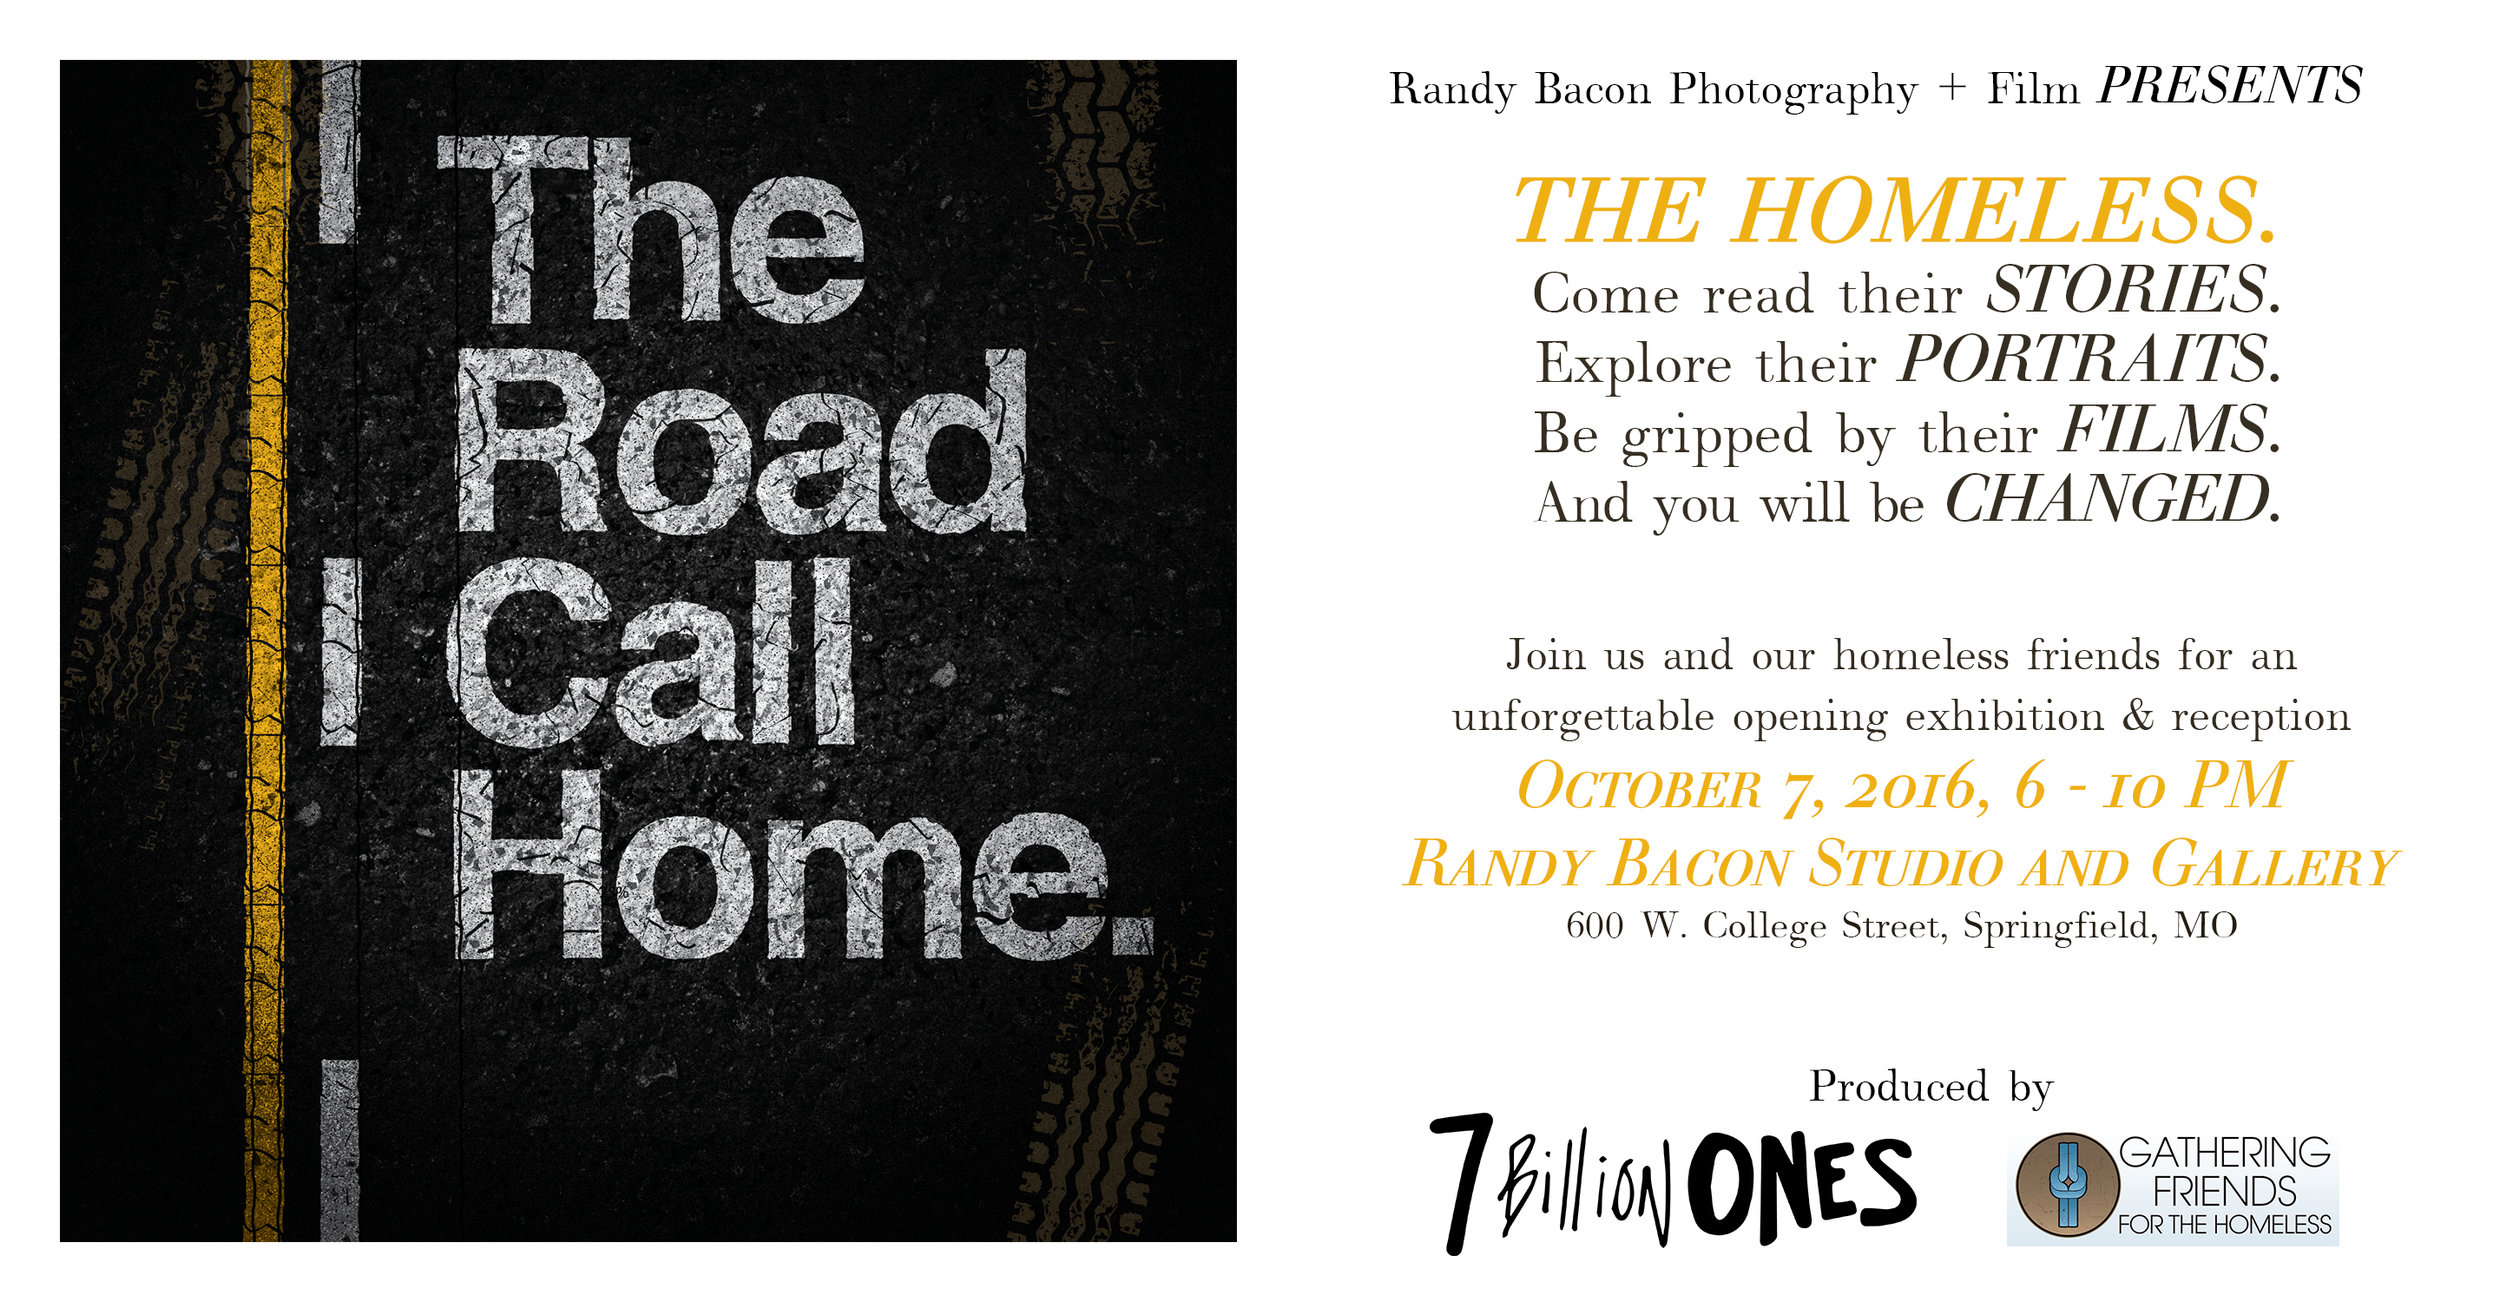 The Road I Call Home - Opening Exhibition and Reception